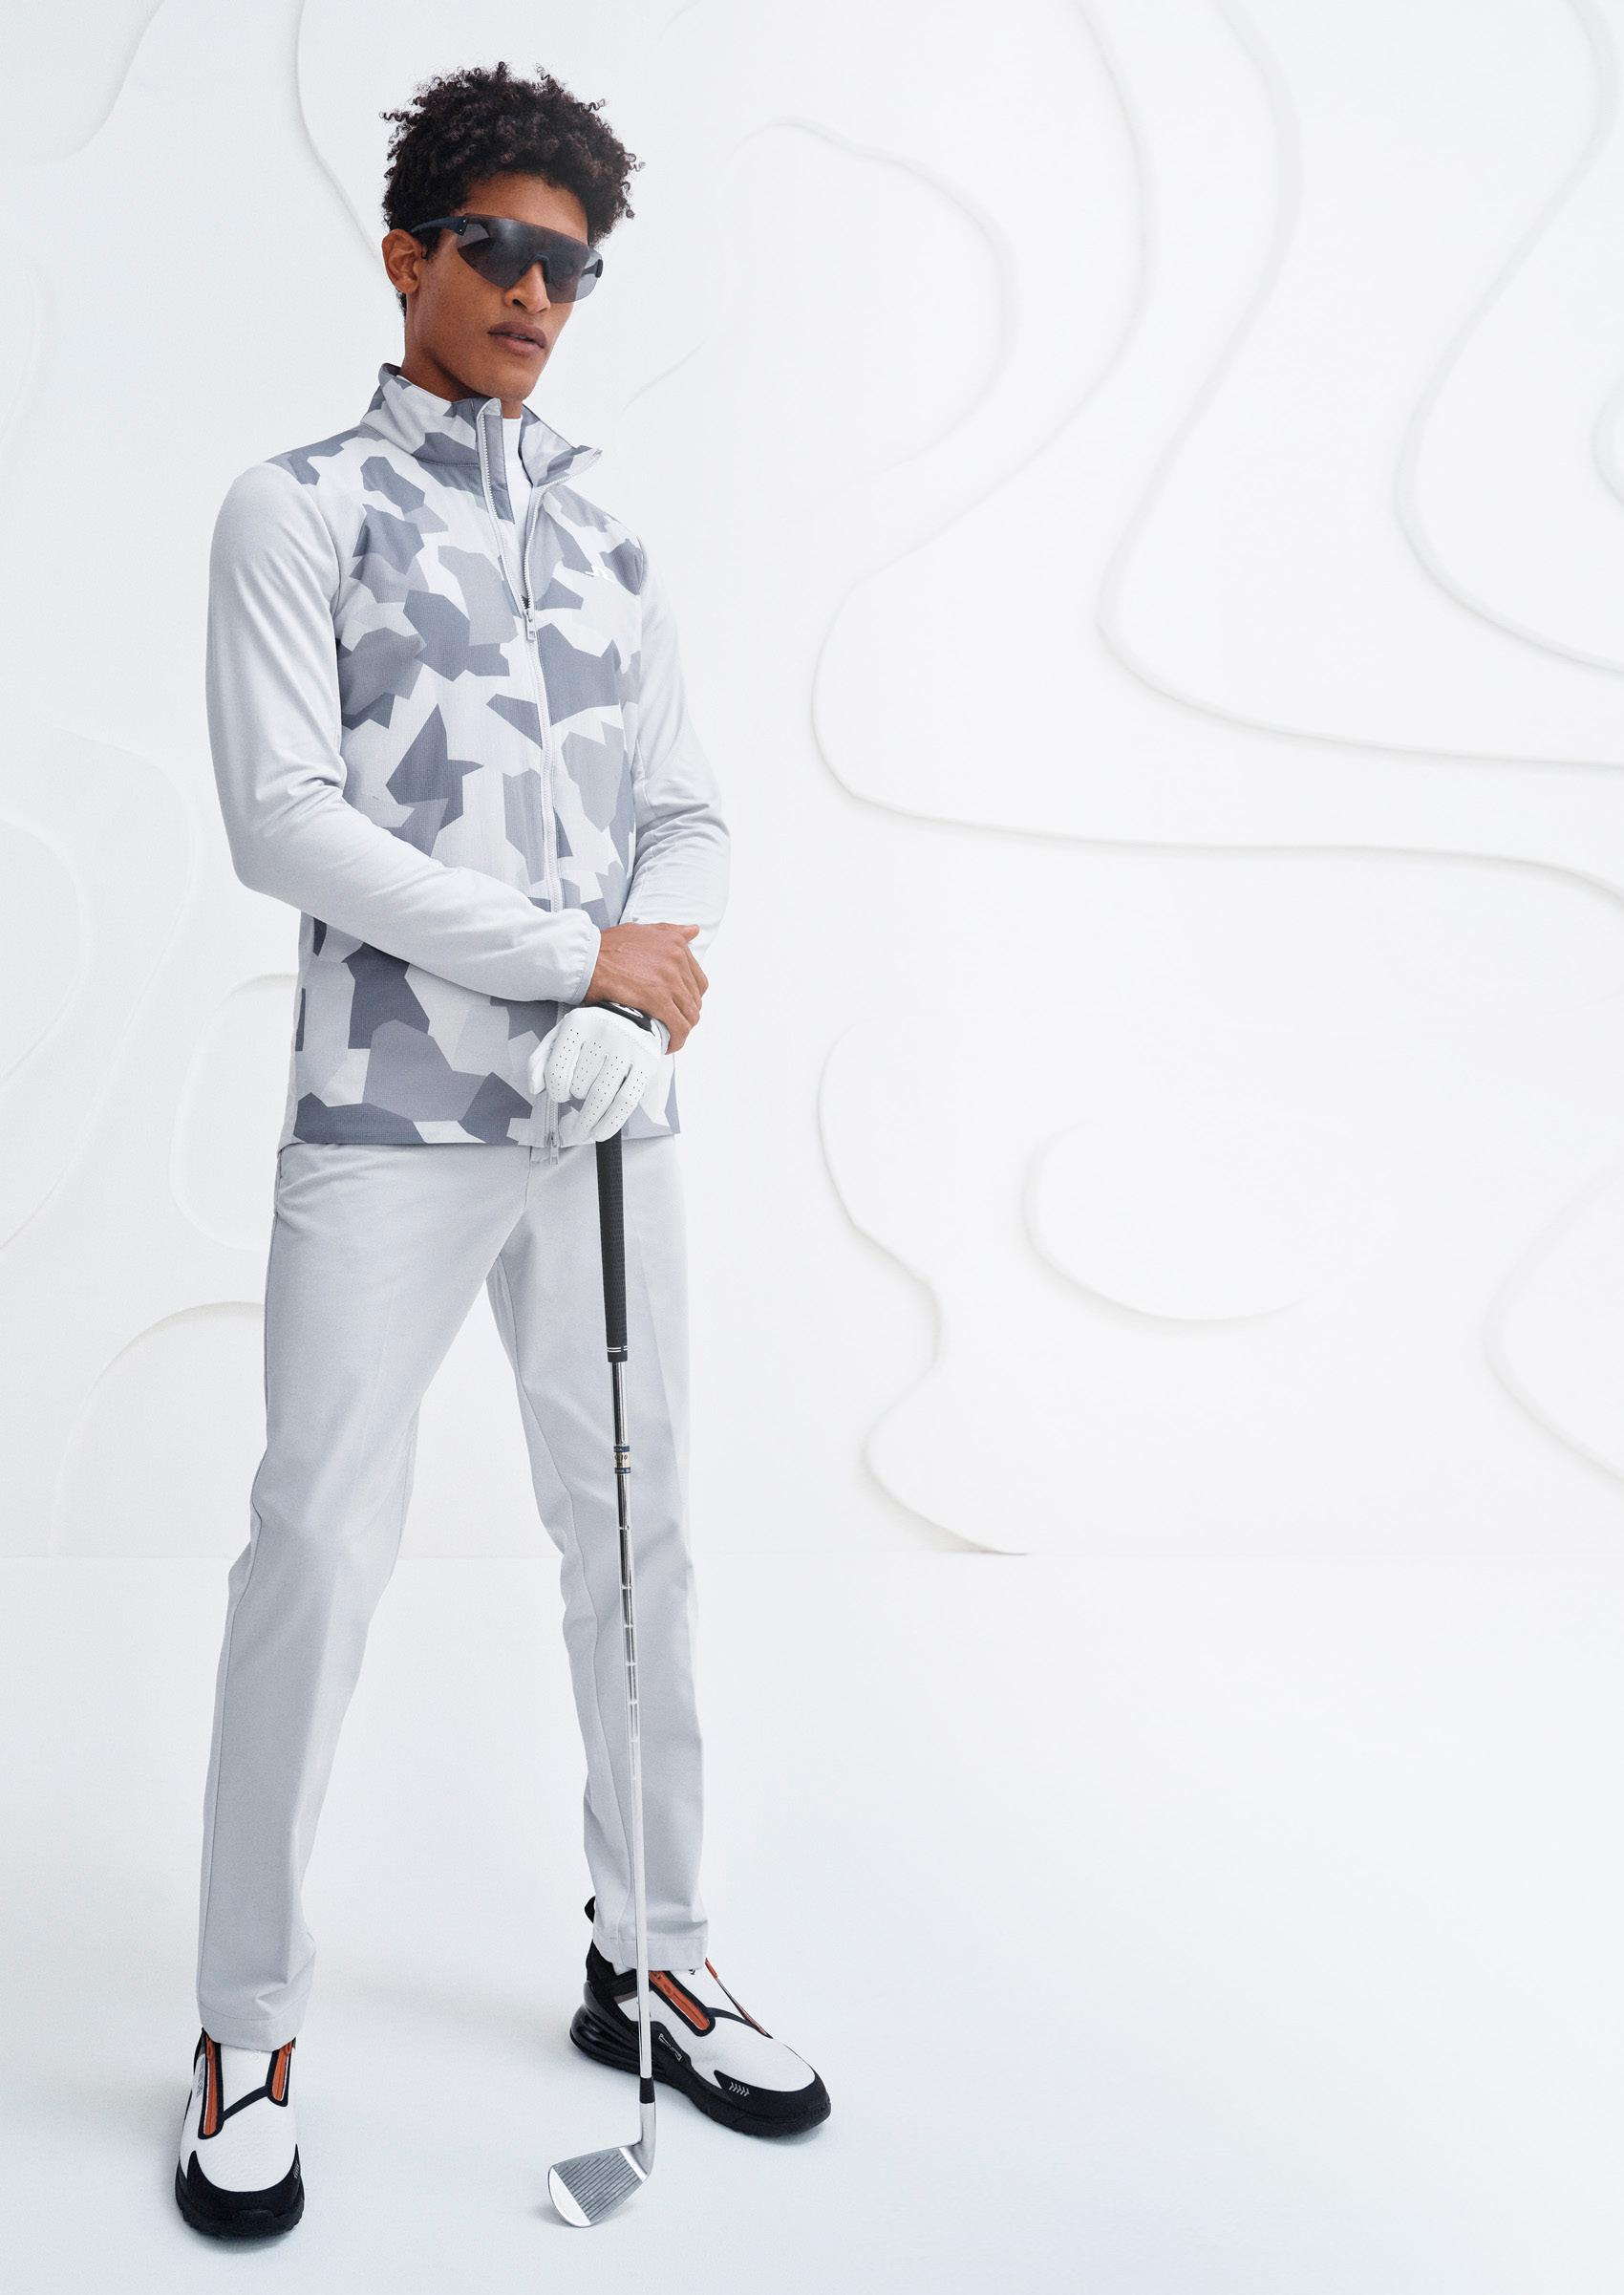 Page 22 of J.LINDEBERG 'AIM HIGHER' WITH FW21